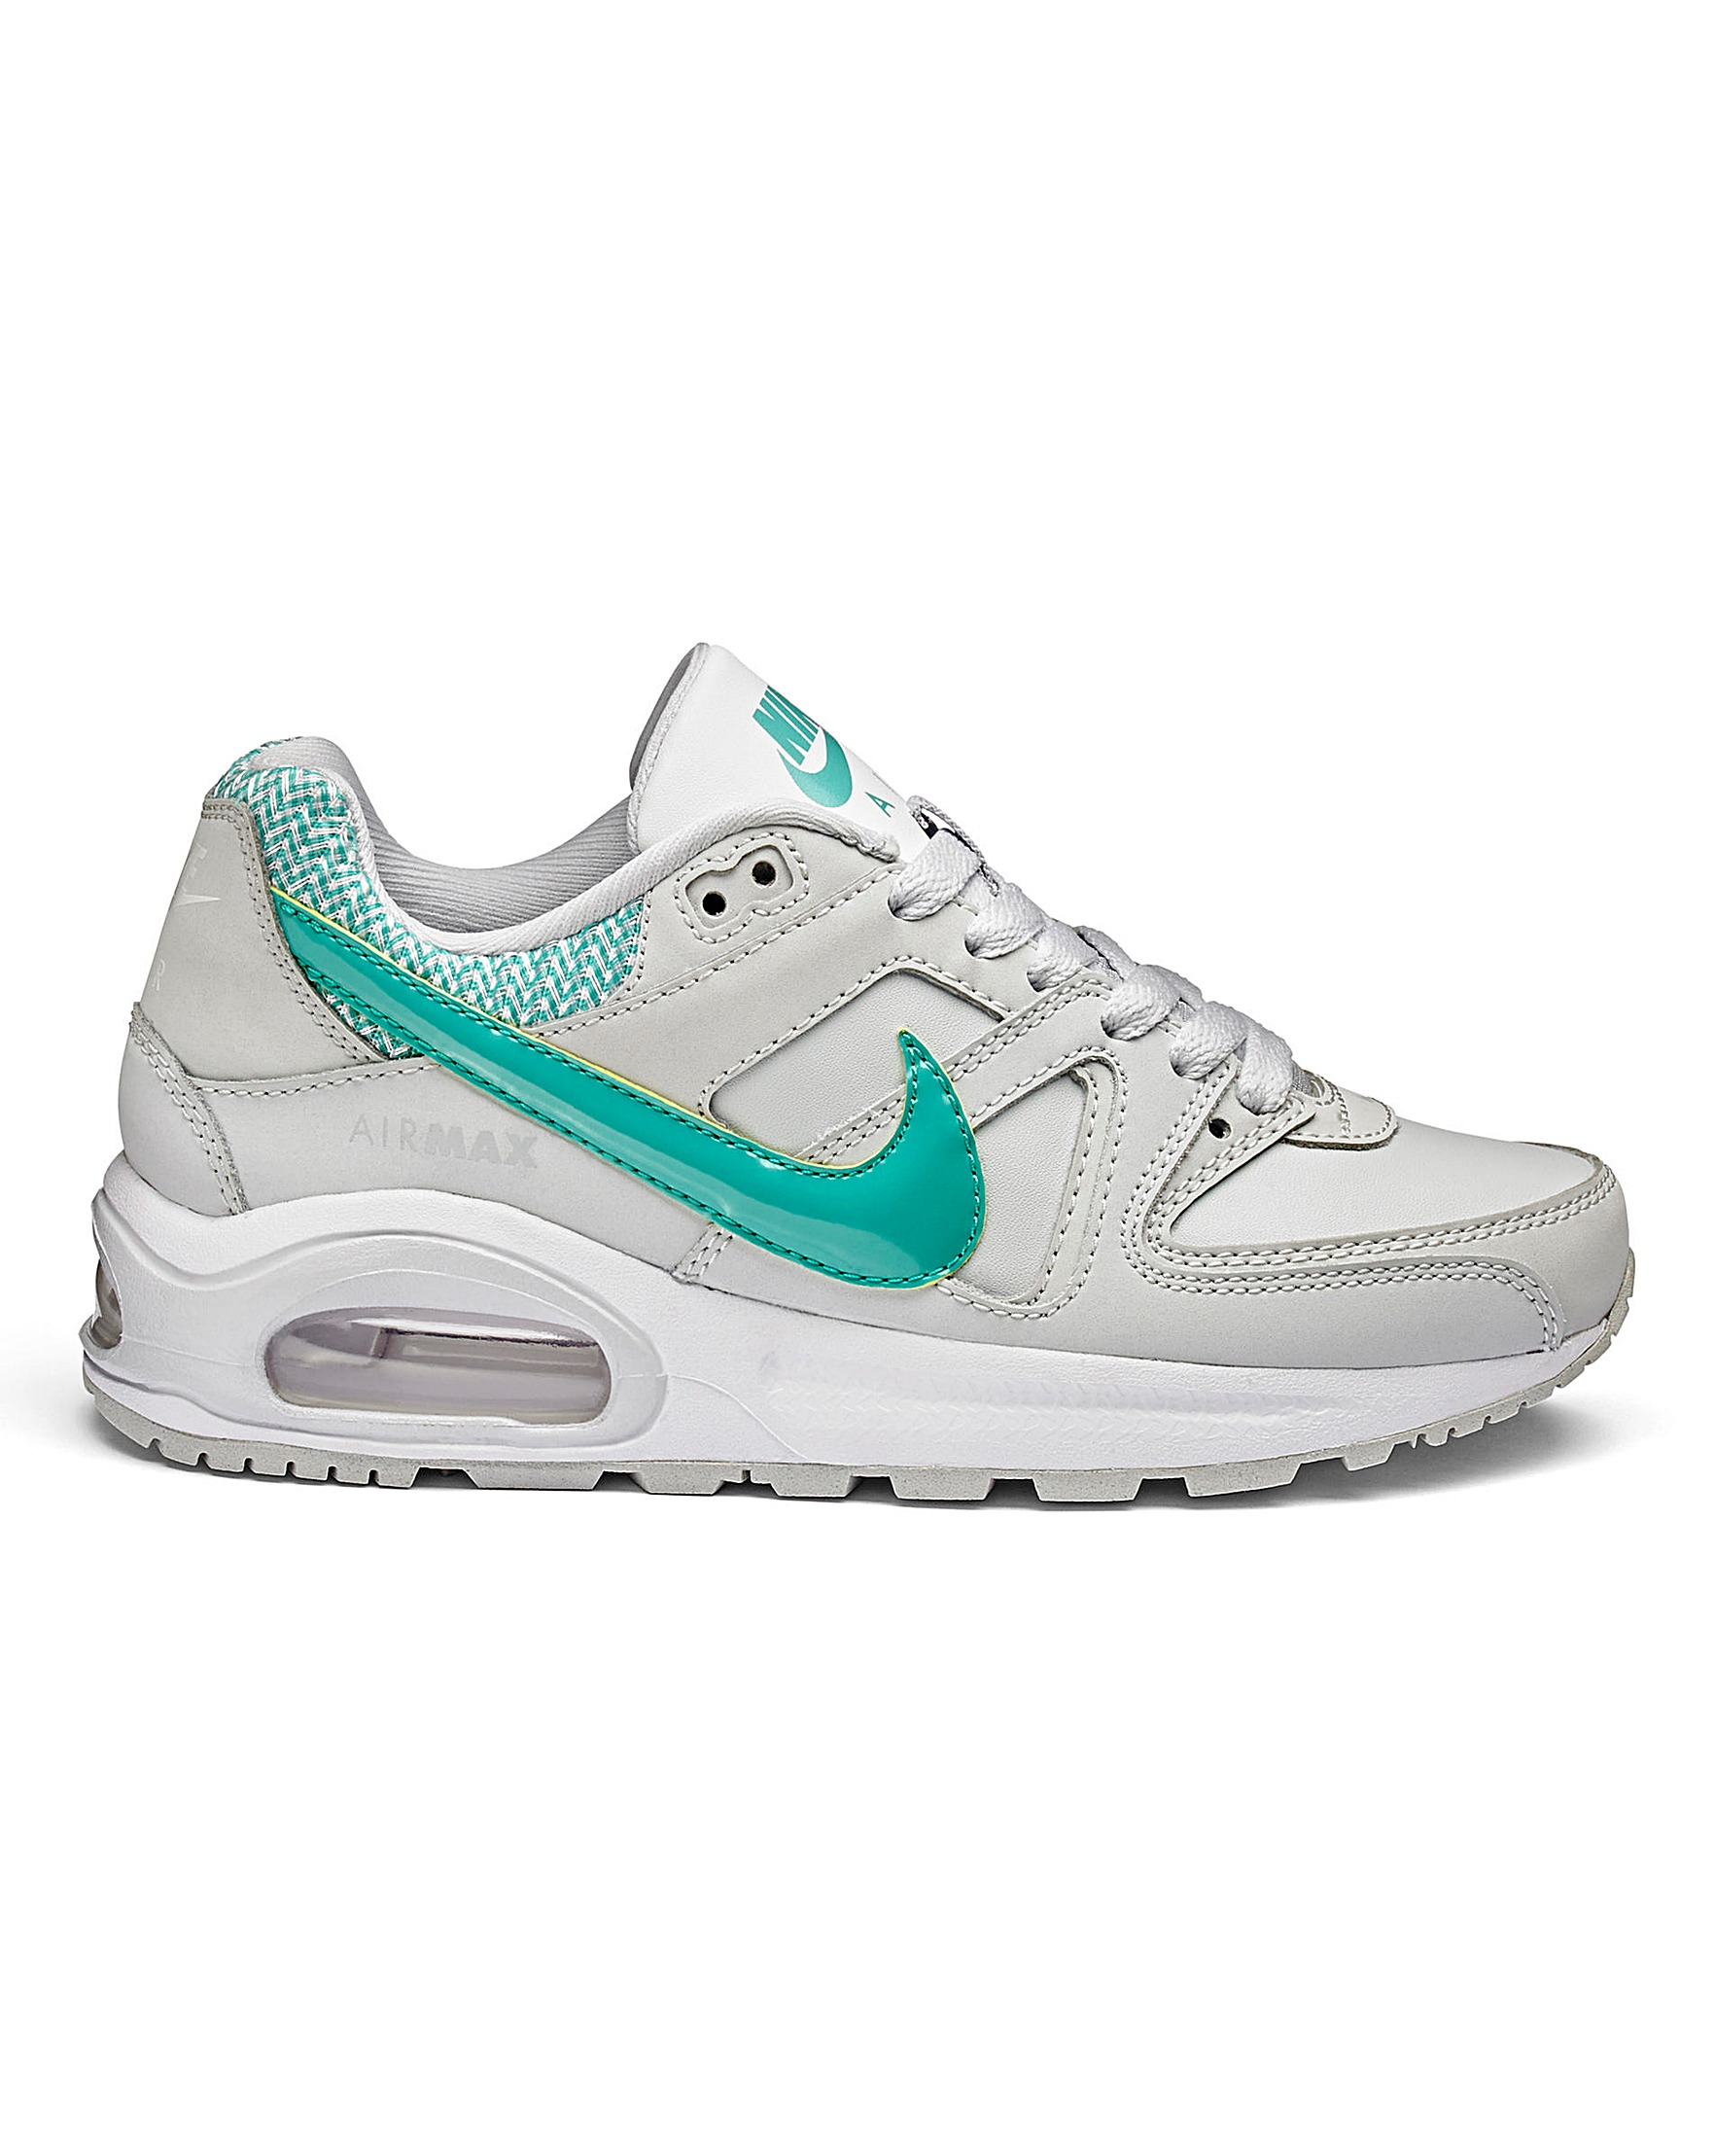 on sale 79065 873a3 Nike Air Max Command Flex Girls Trainers   Oxendales